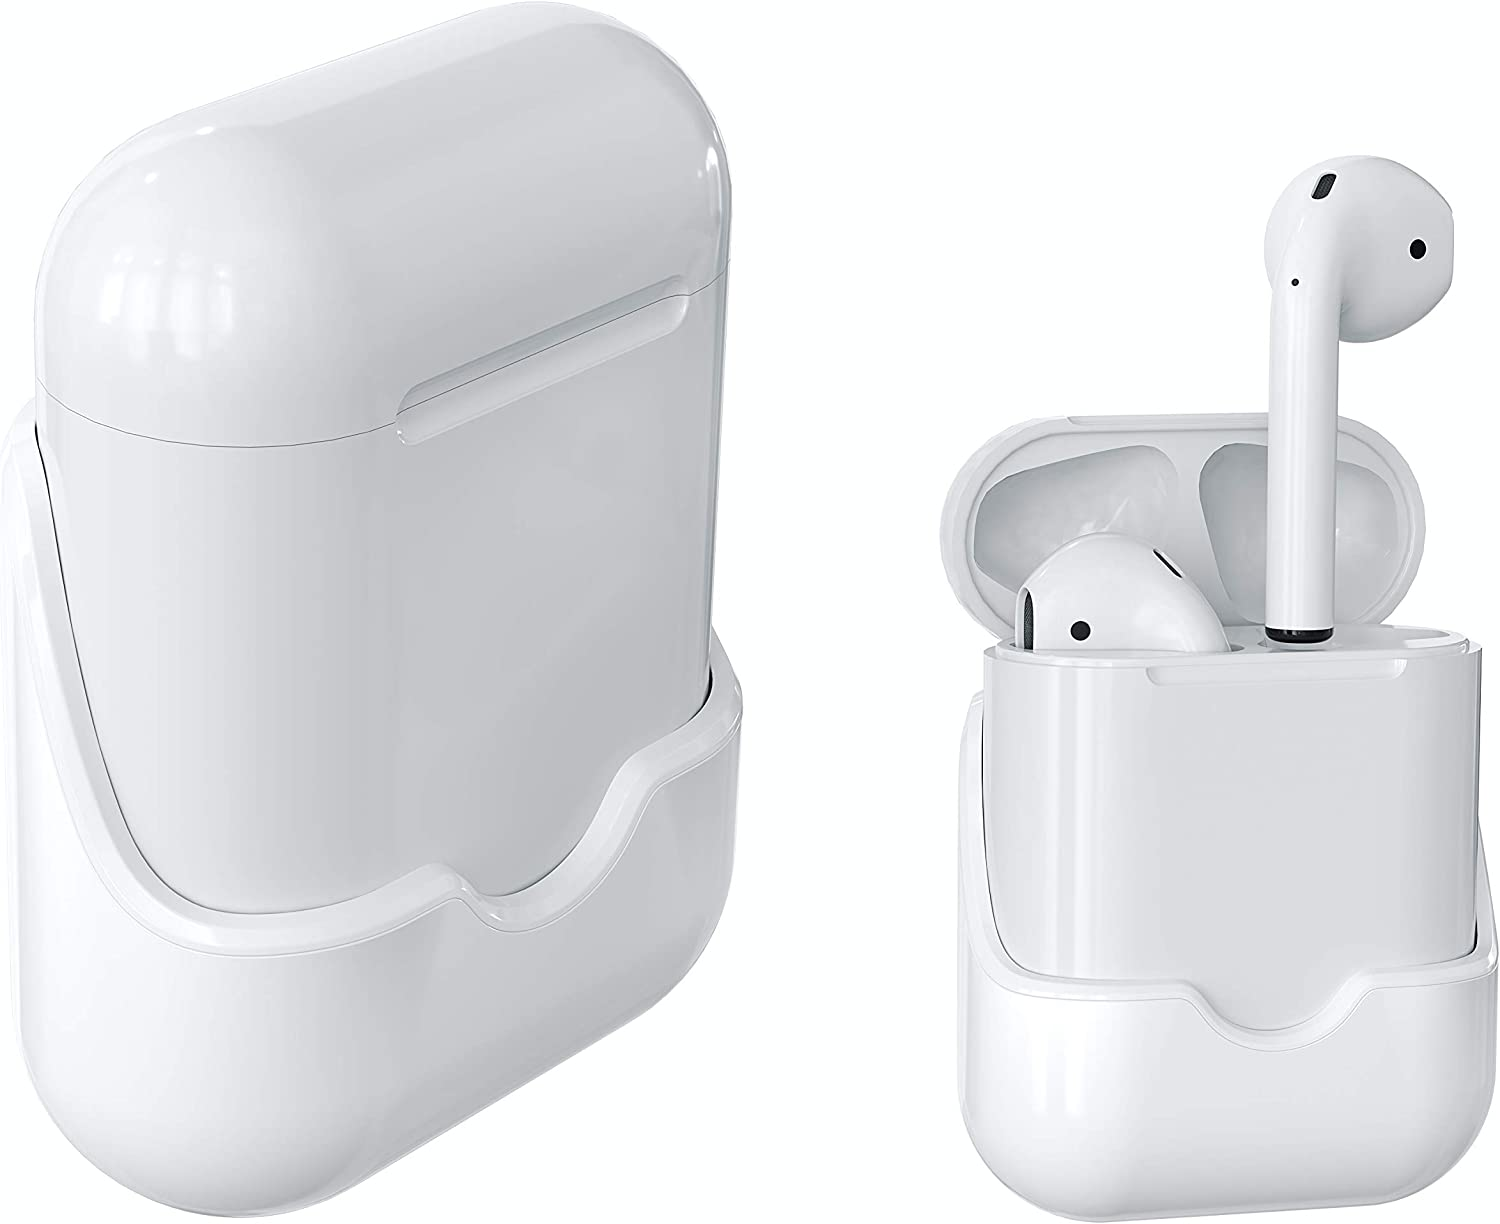 Skywin Wireless Charging Receiver Compatible with Airpods